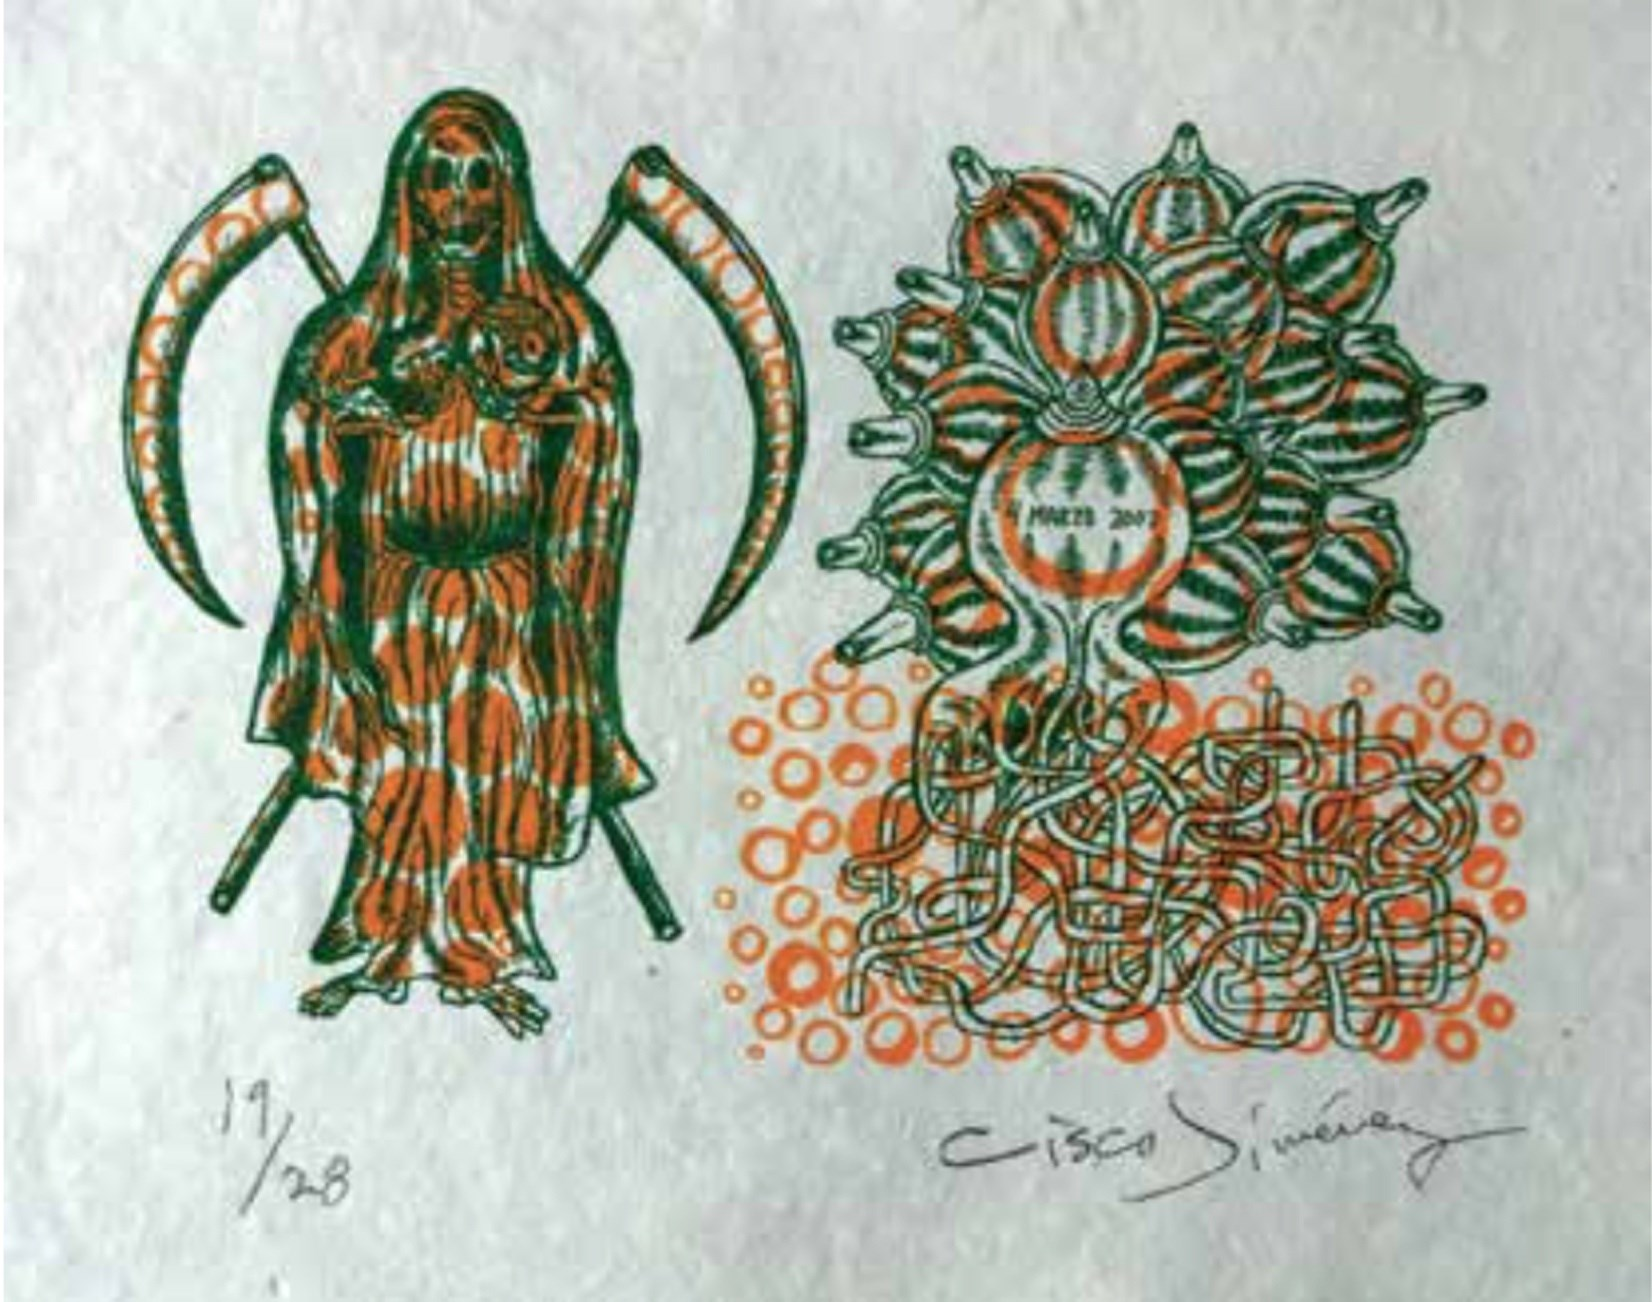 Santa Muerte, original Abstract Collage Drawing and Illustration by Cisco Jiménez